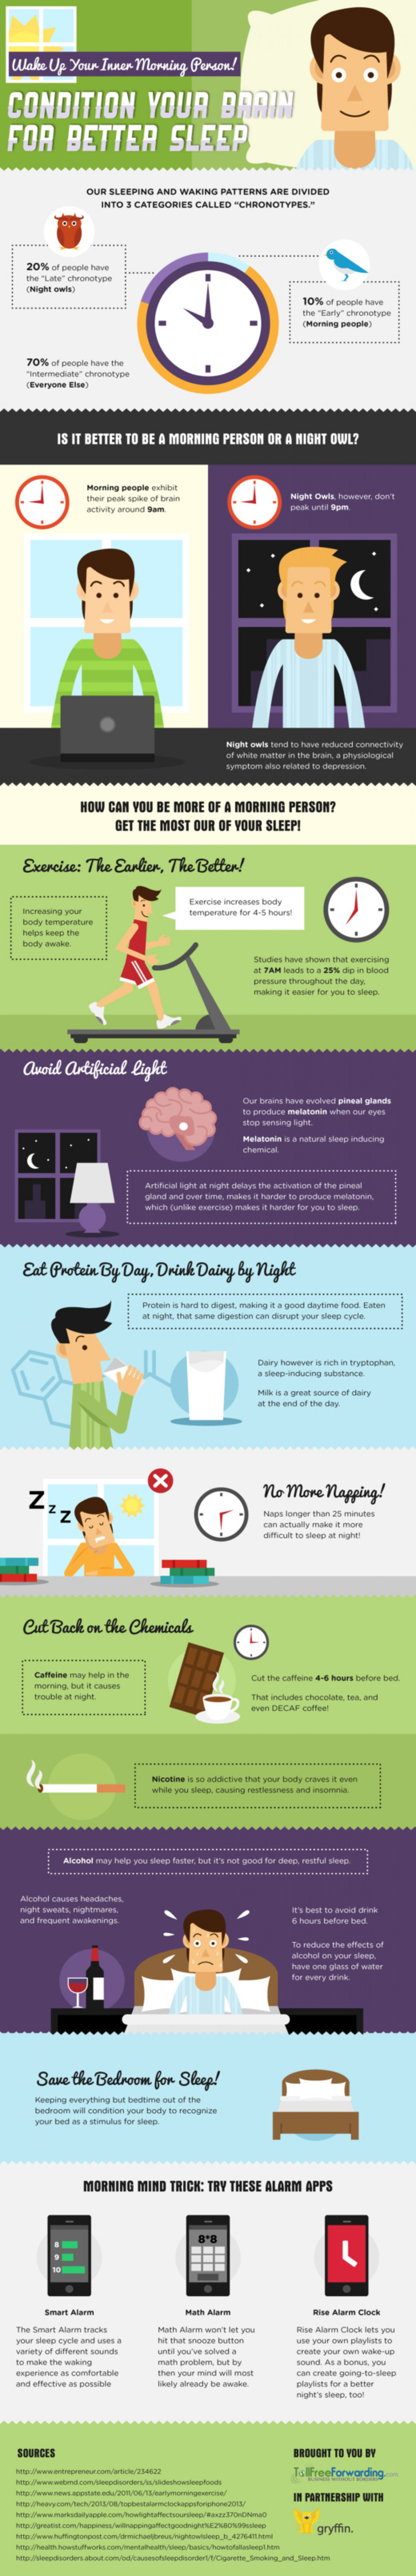 Condition Your Brain for Better Sleep Infographic